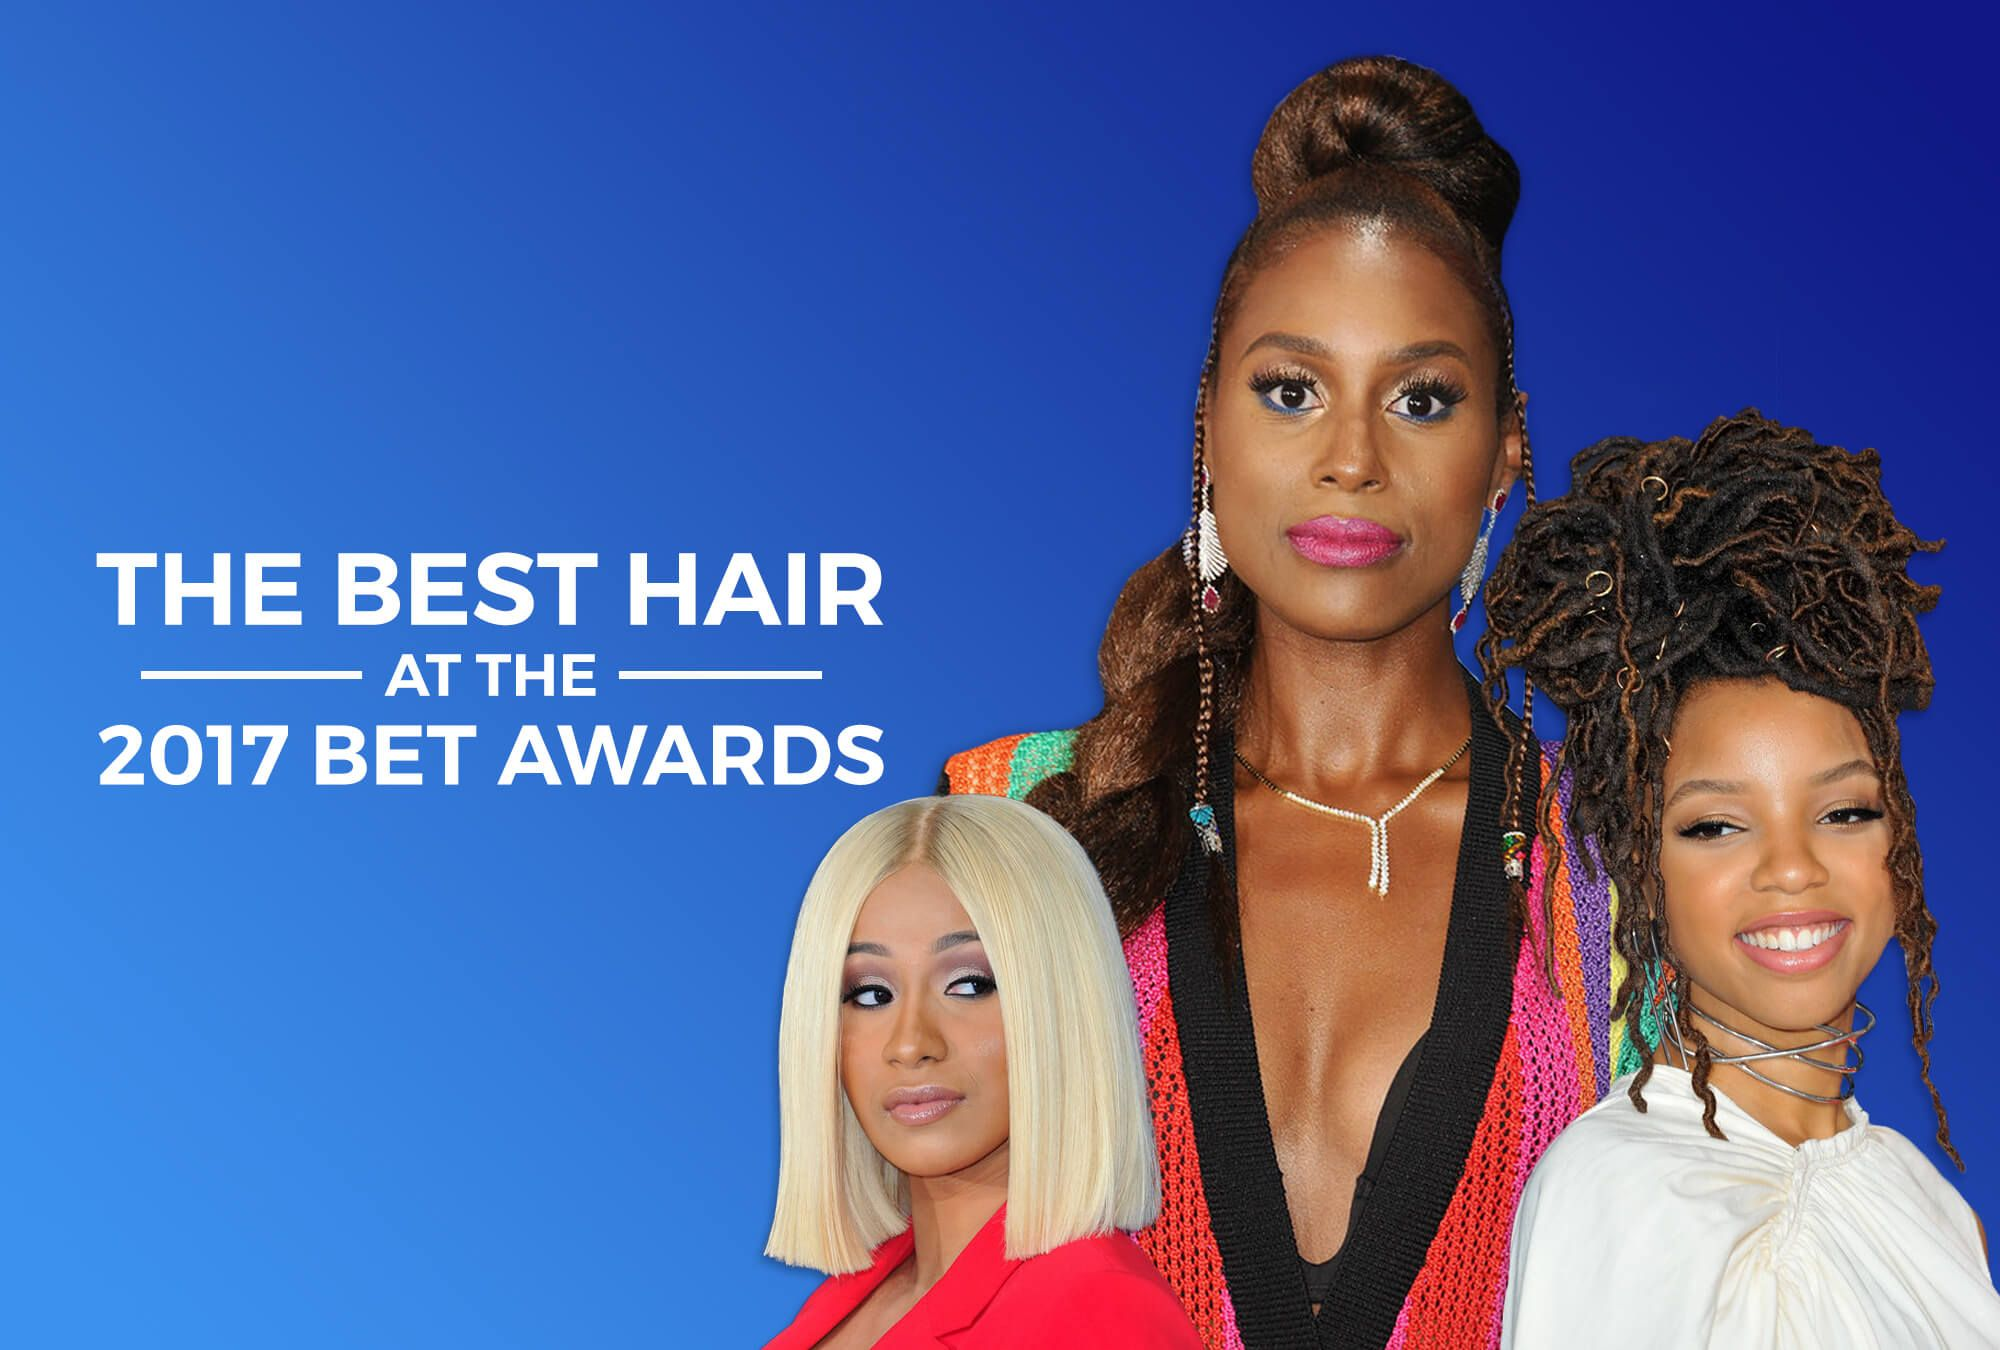 Our Favorite Hair Looks At The 2017 BET Awards